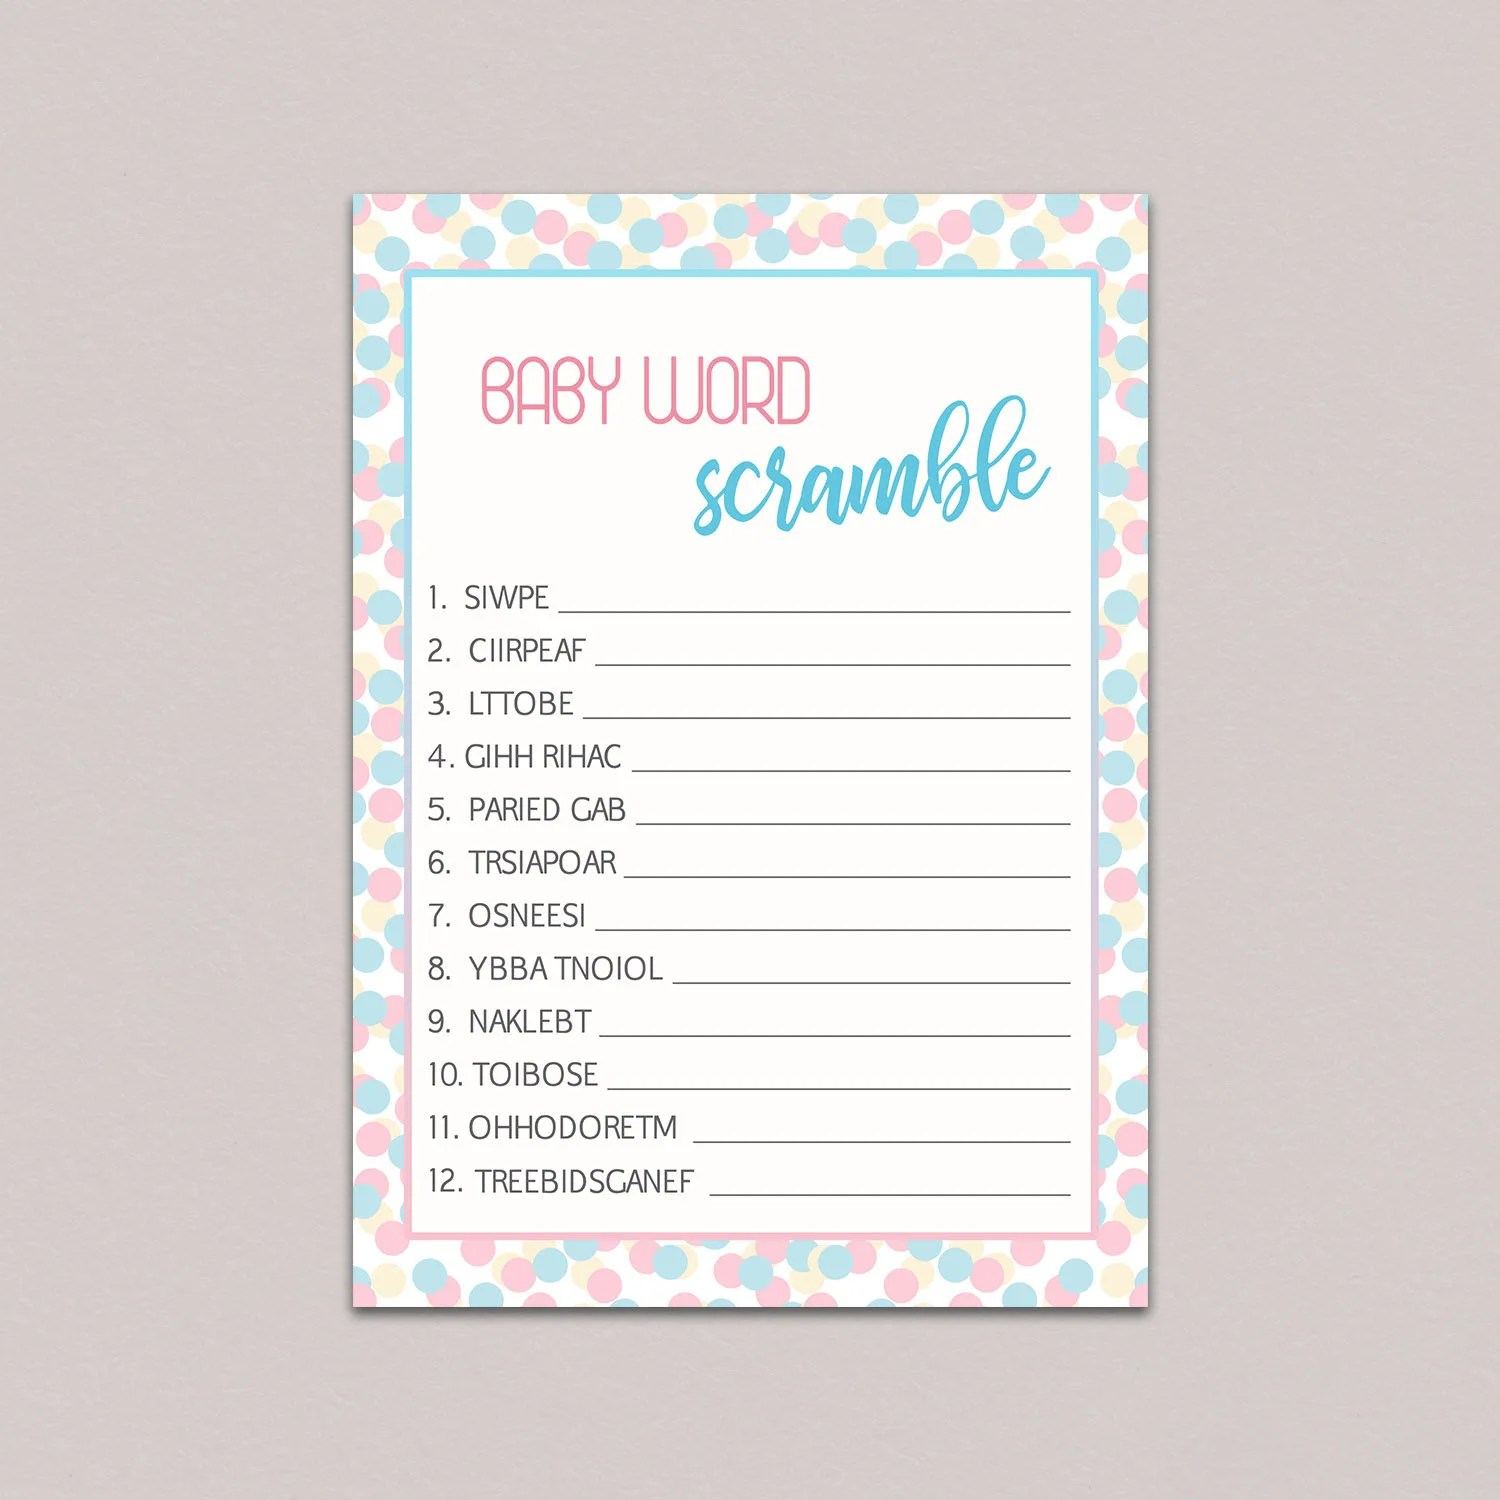 Gender Reveal Party Games Baby Word Scramble Game Baby